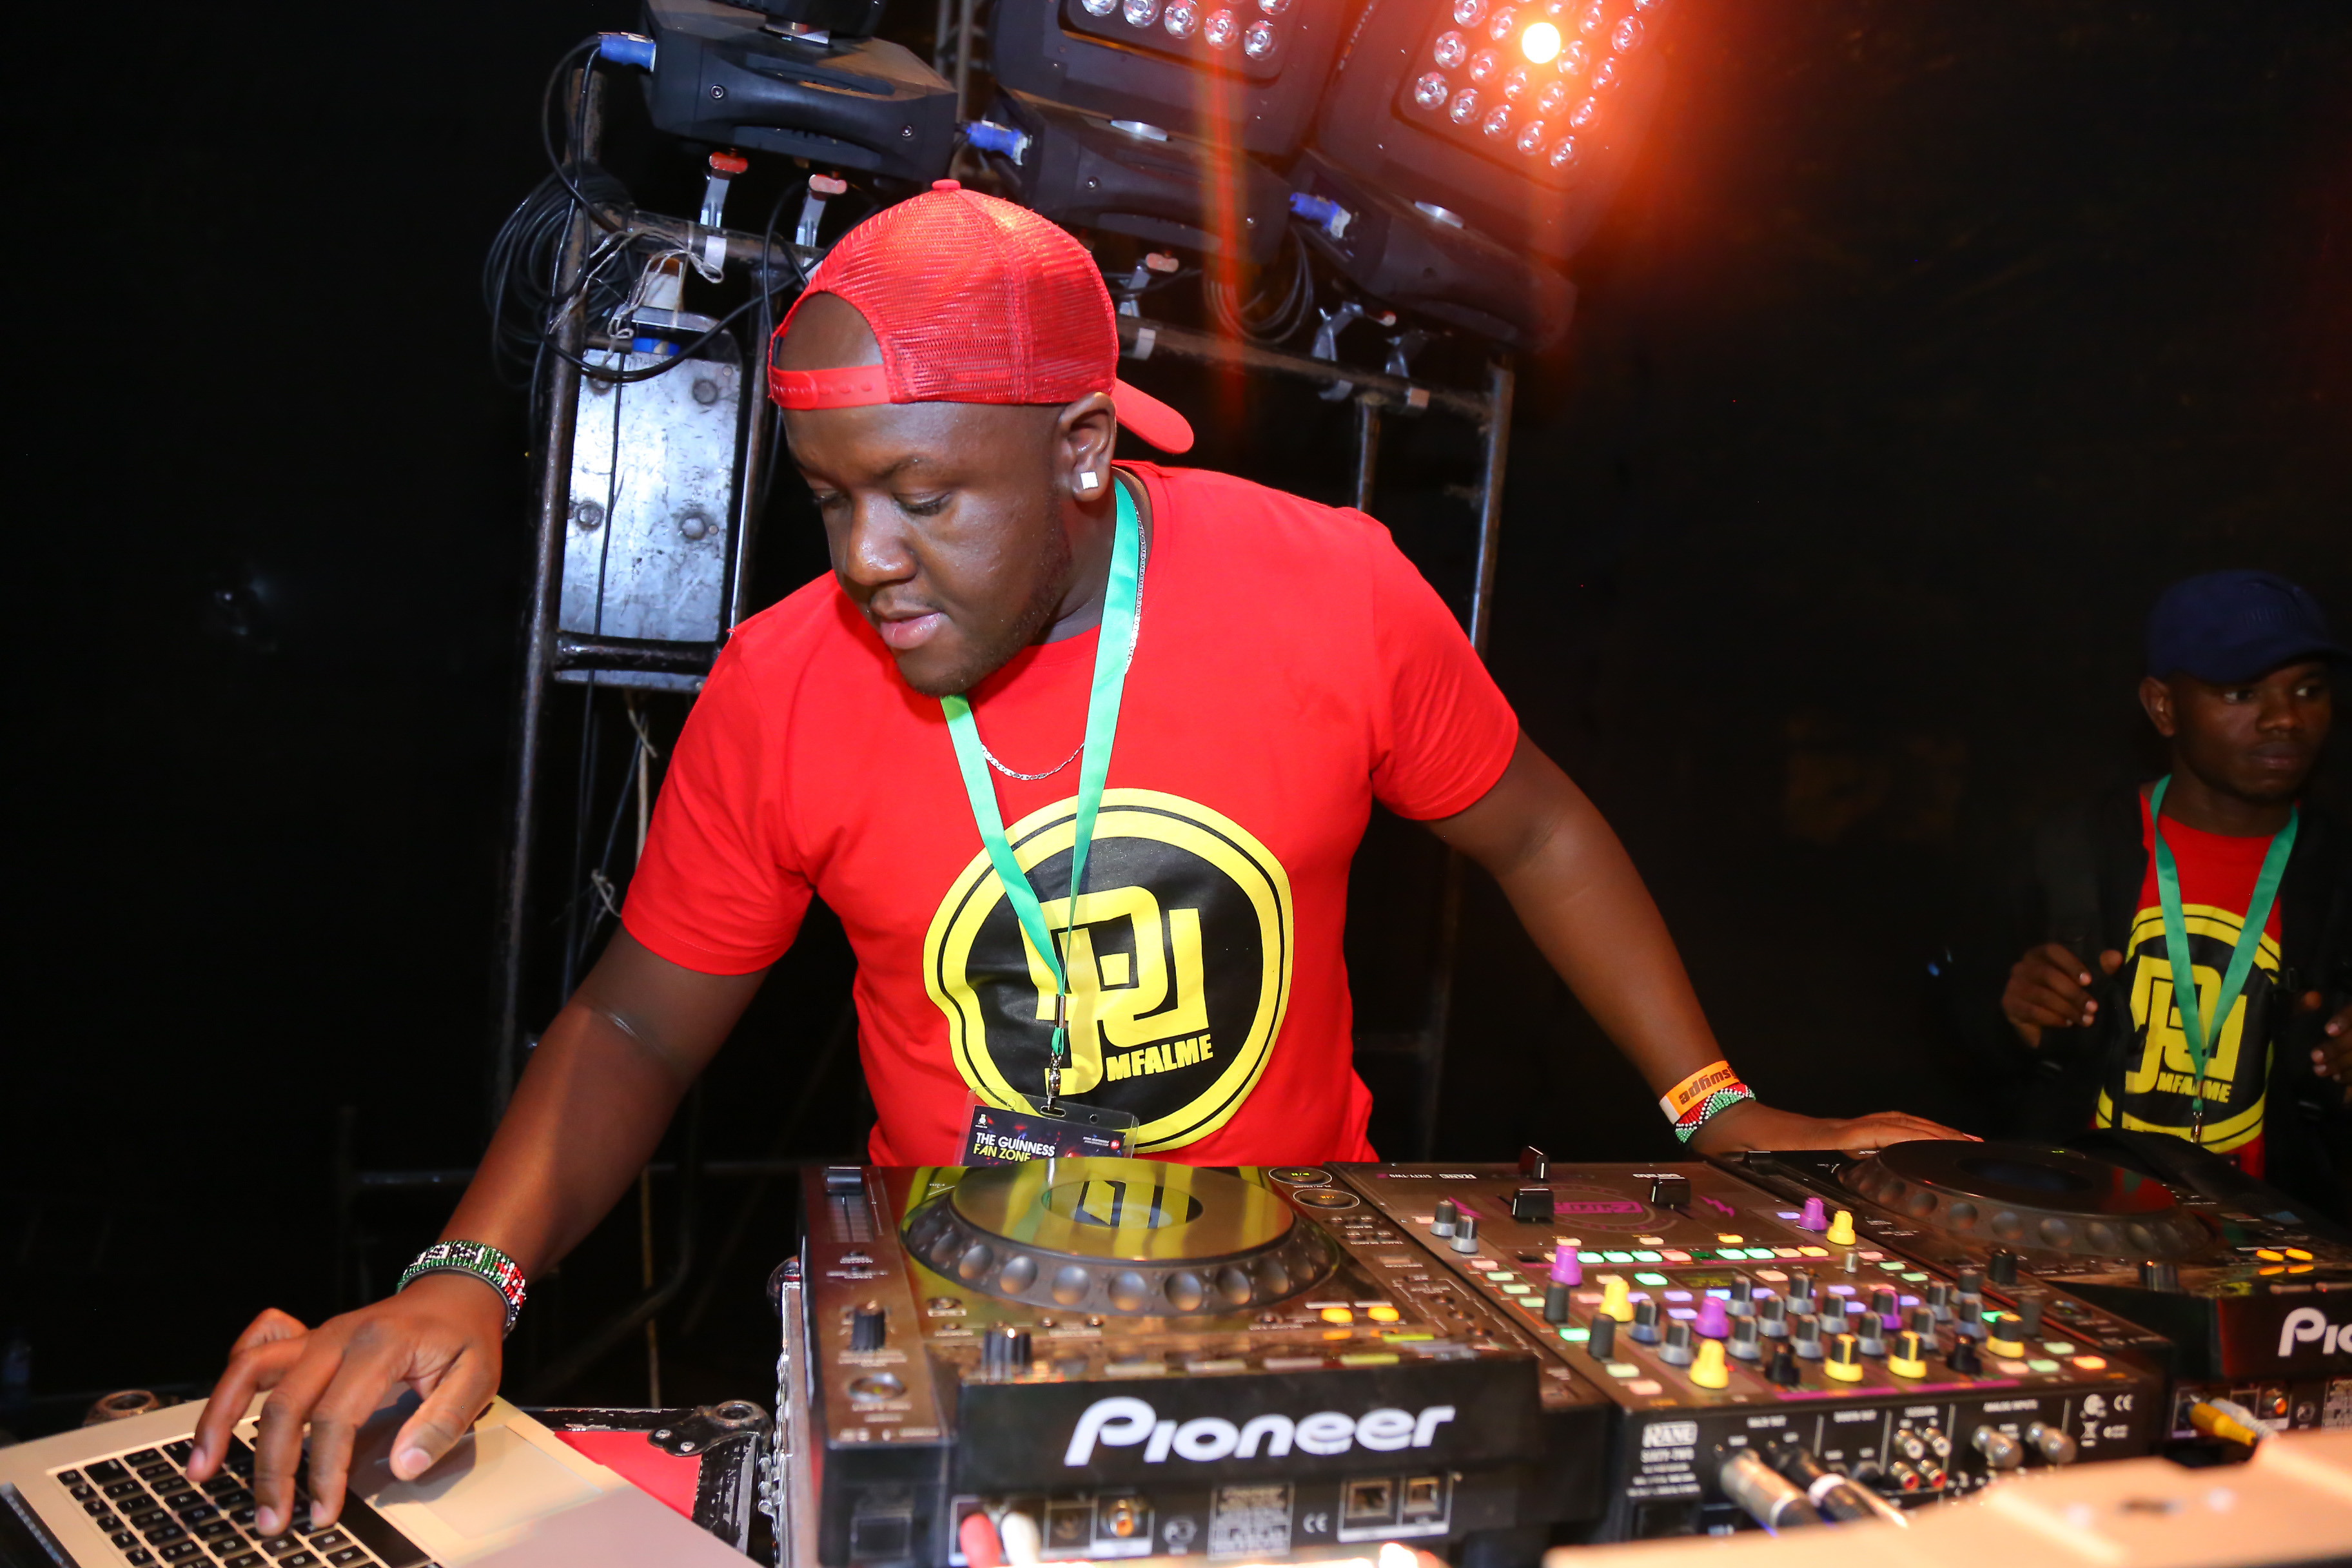 Photo:Dj Joe Mfalme on decks during the Guinness Fanzone Experience held at Simba Union Club in Kisumu over the weekend.